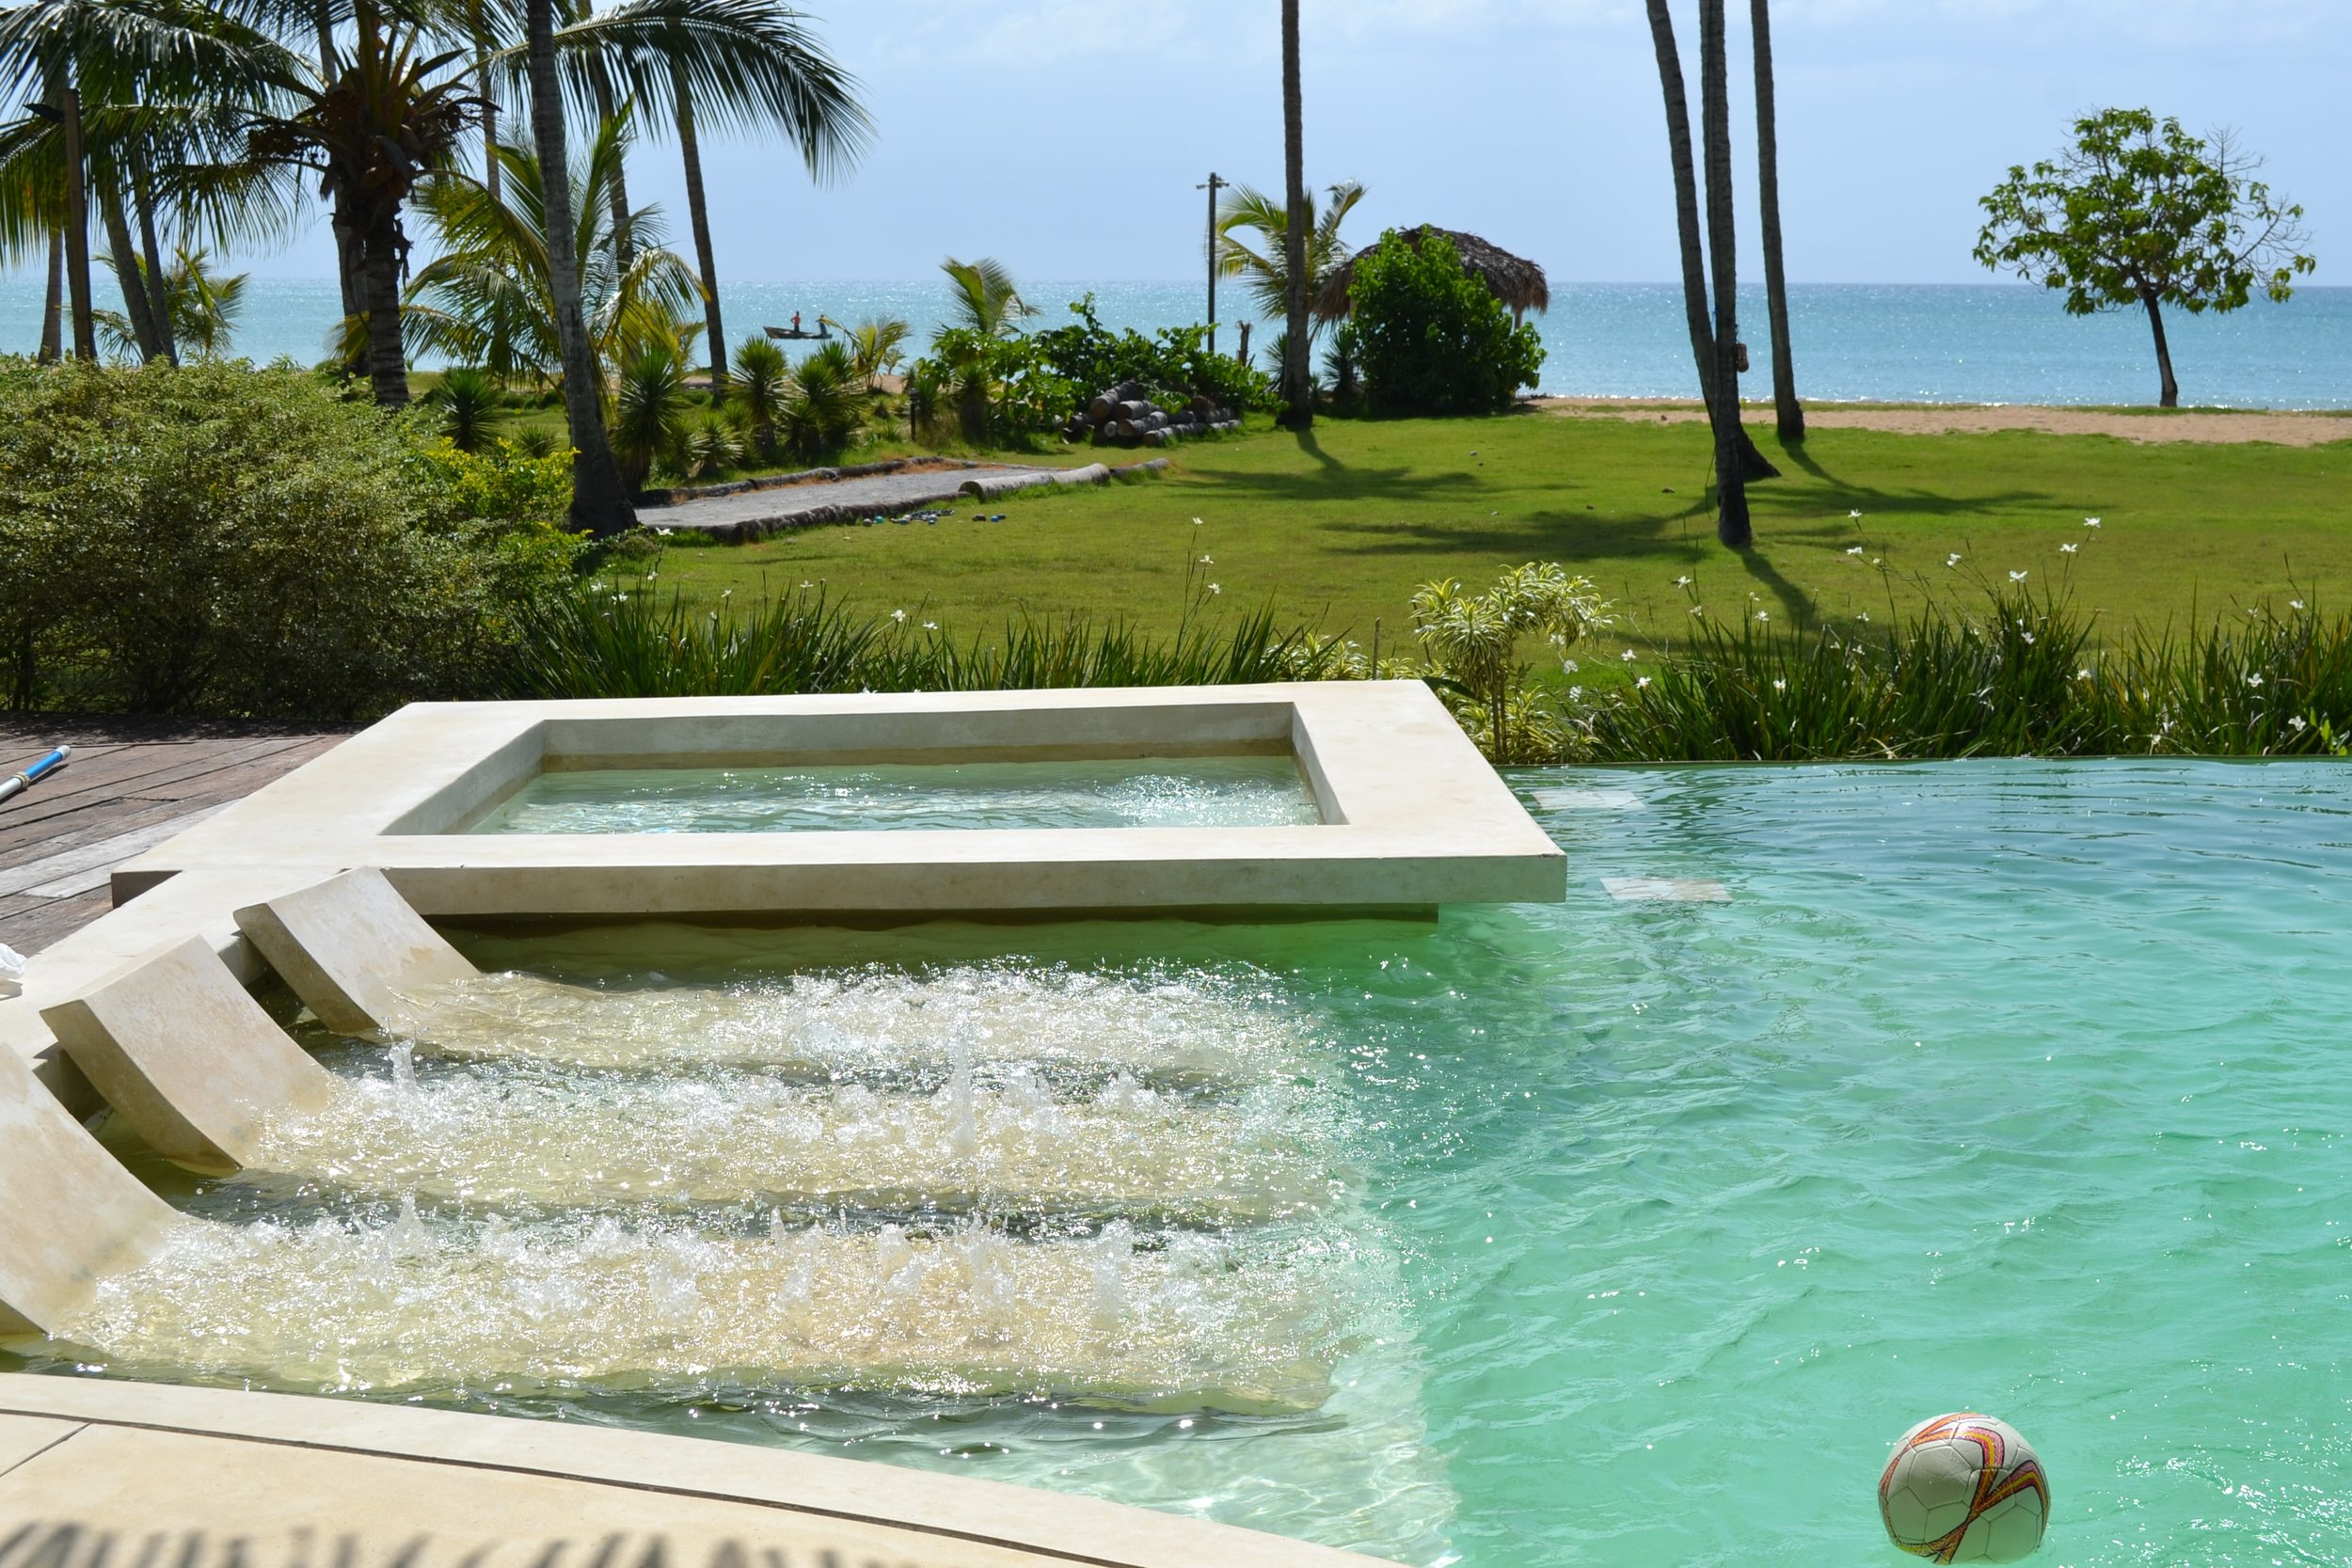 Villa for Sale Las Terrenas jacuzzi in the pool.JPG